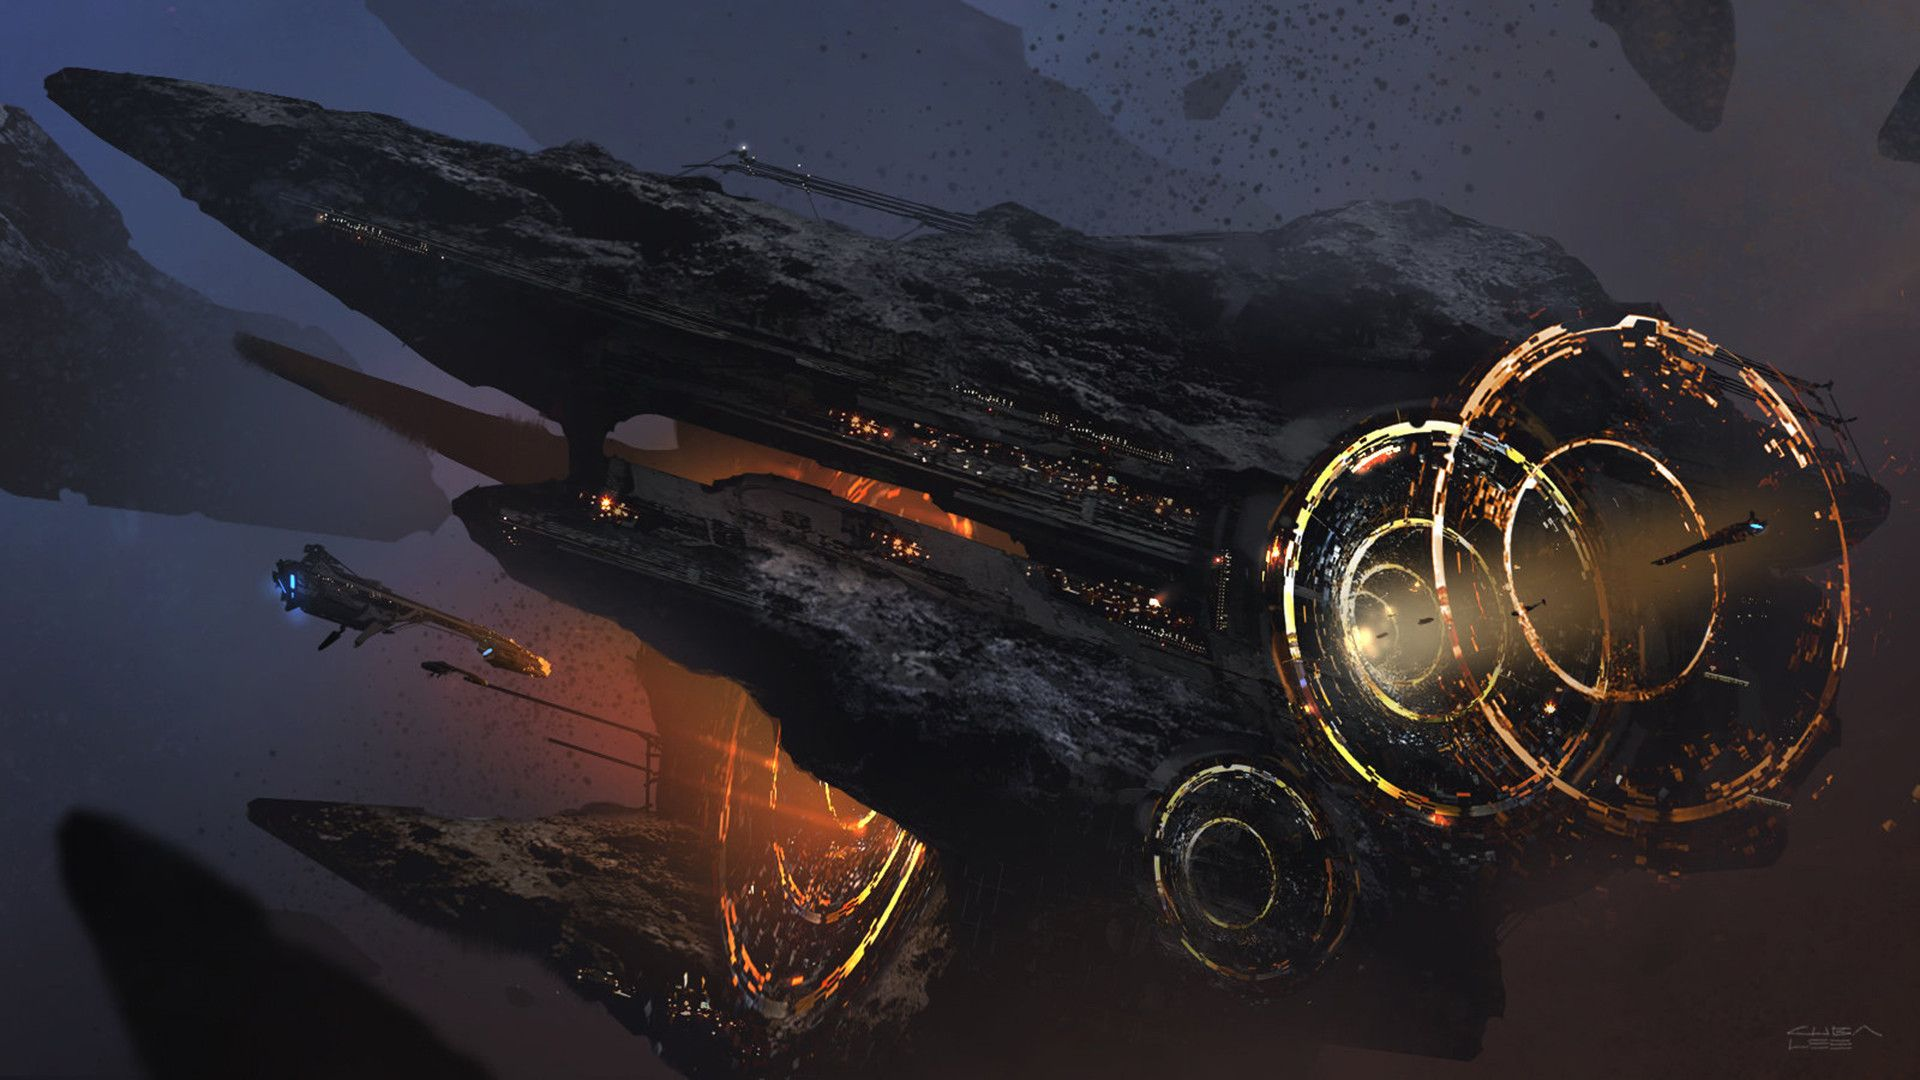 Sci Fi Space Wallpapers Top Free Sci Fi Space Backgrounds